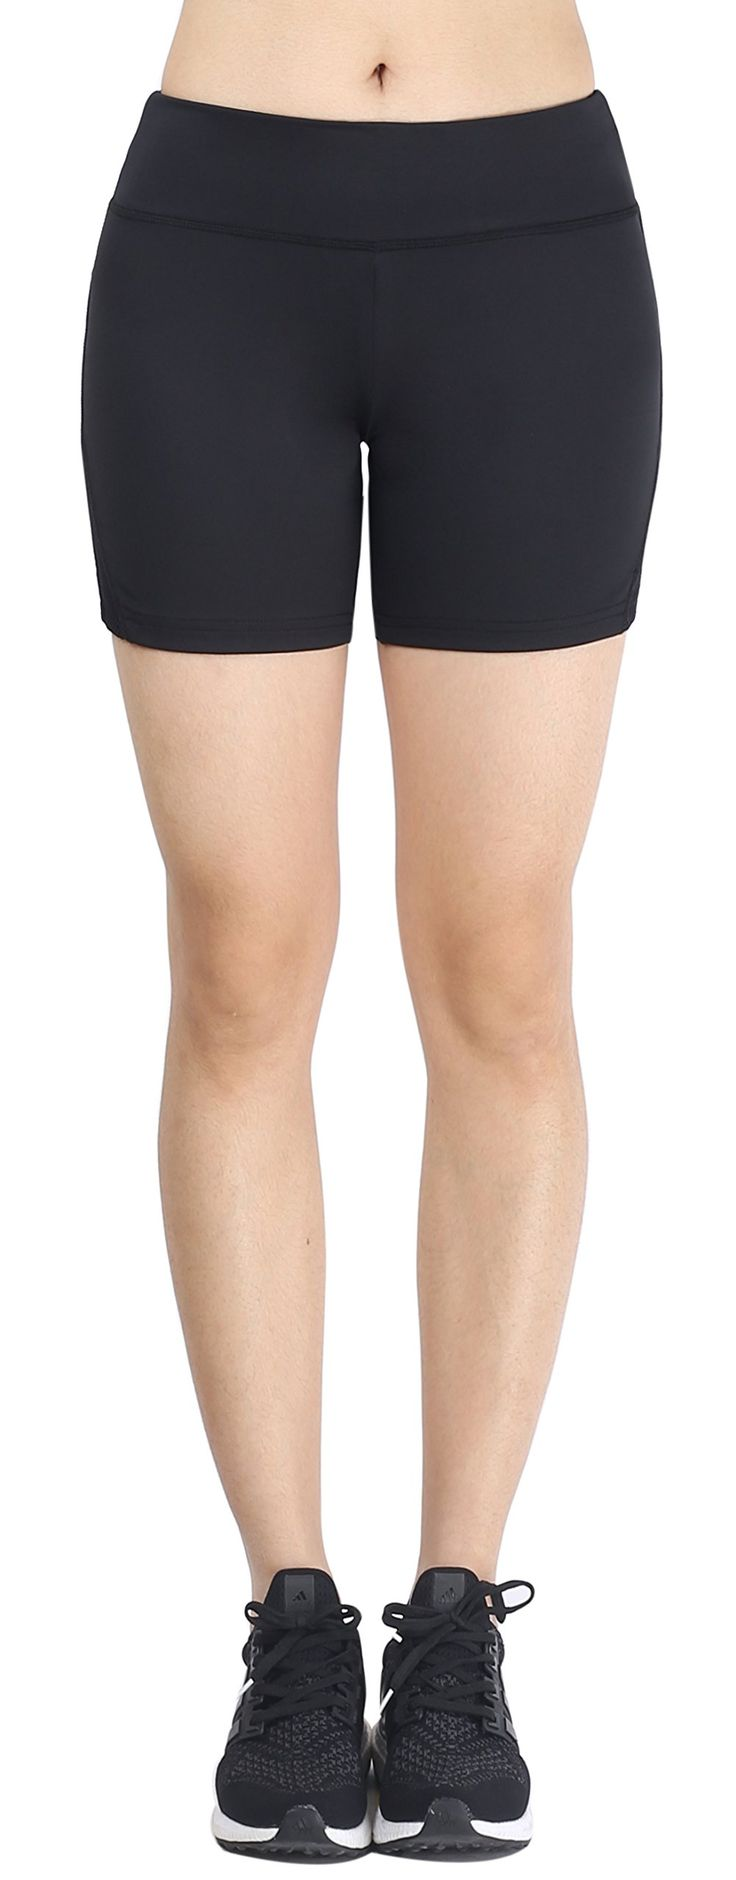 """Zinmore Women's Ladies Runnng Cycling Yoga Short Pants Exercise Workout Shorts Black L. 88% Polyester and 12% Lycra, Sweat-wicking, stretchy and comfortable. 4.9"""" inseam. Hidden waistband pocket to hold keys, cards and all the little things. Ideal for yoga, running, workout, cycling, lounge and everyday casual wear."""